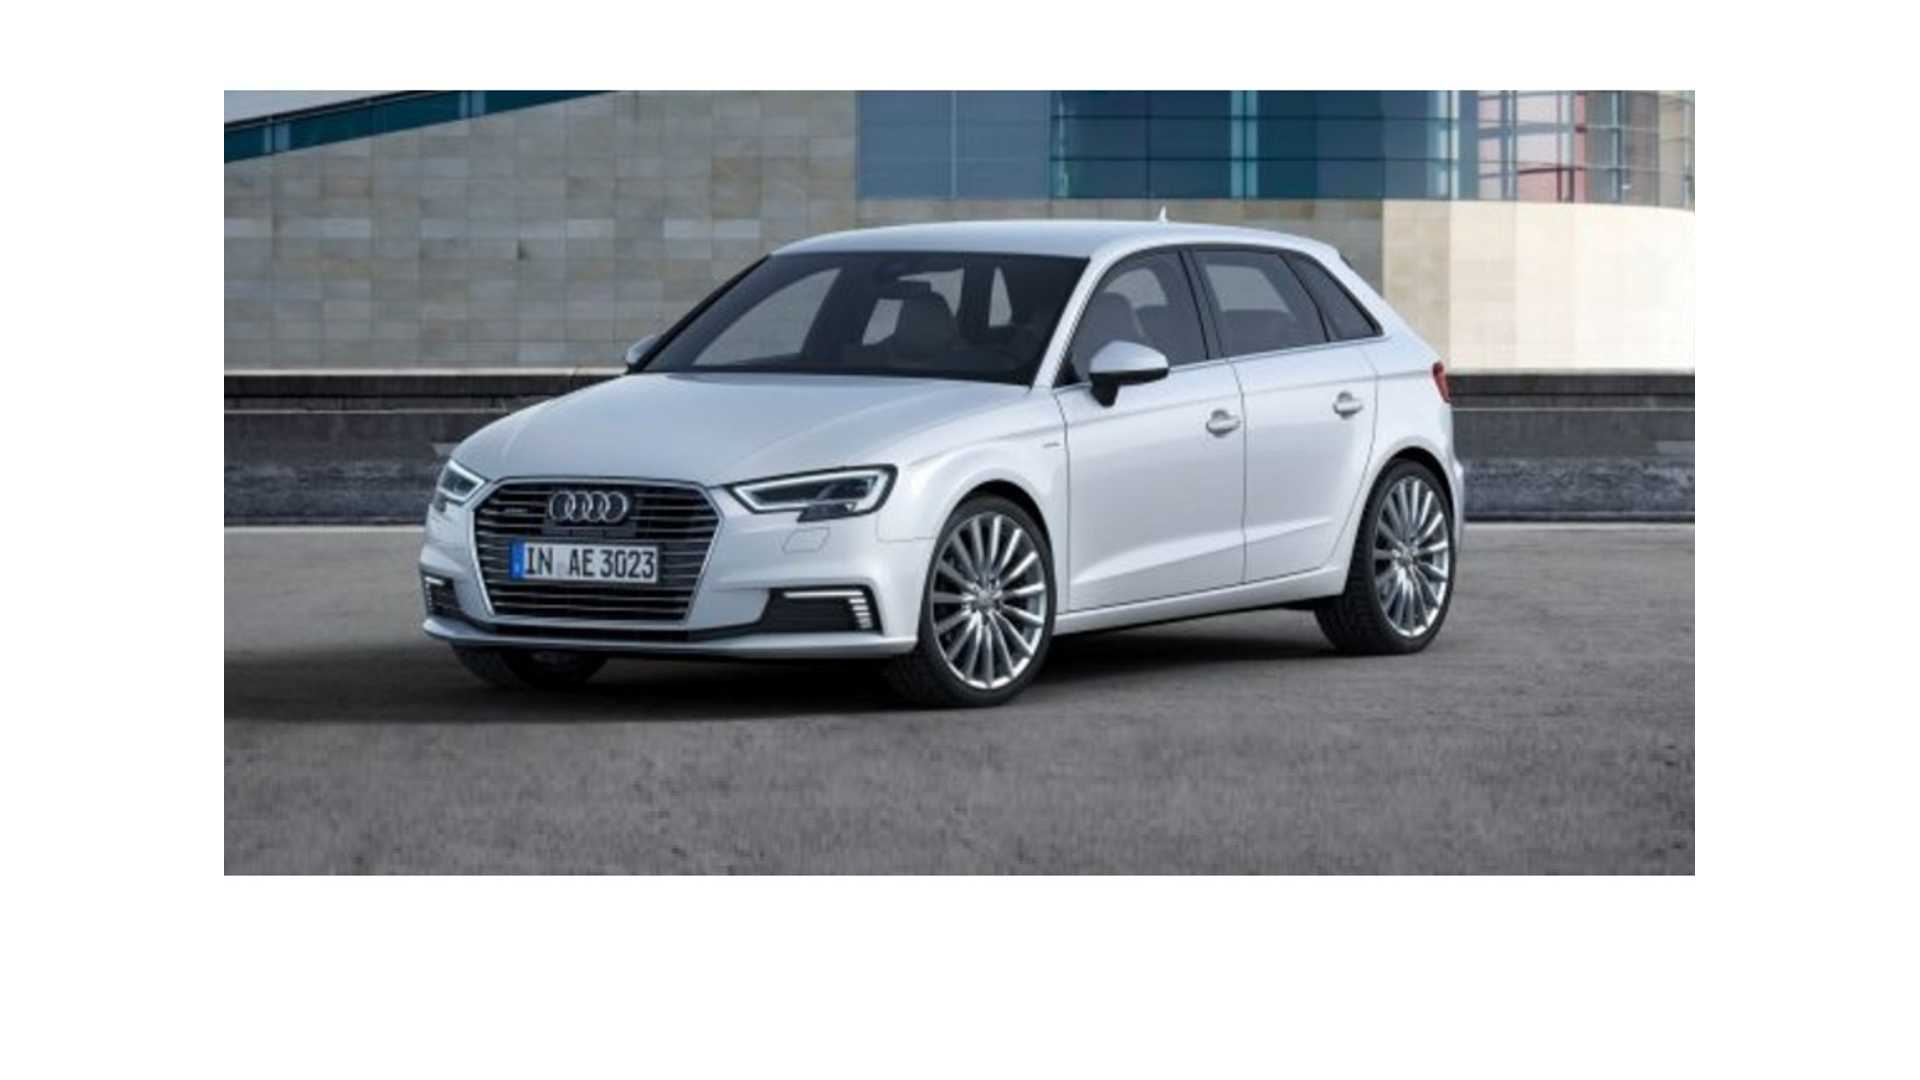 Refreshed 2017 Audi A3 Sportback E Tron Arrives With More Tech Panoramic Roof Standard